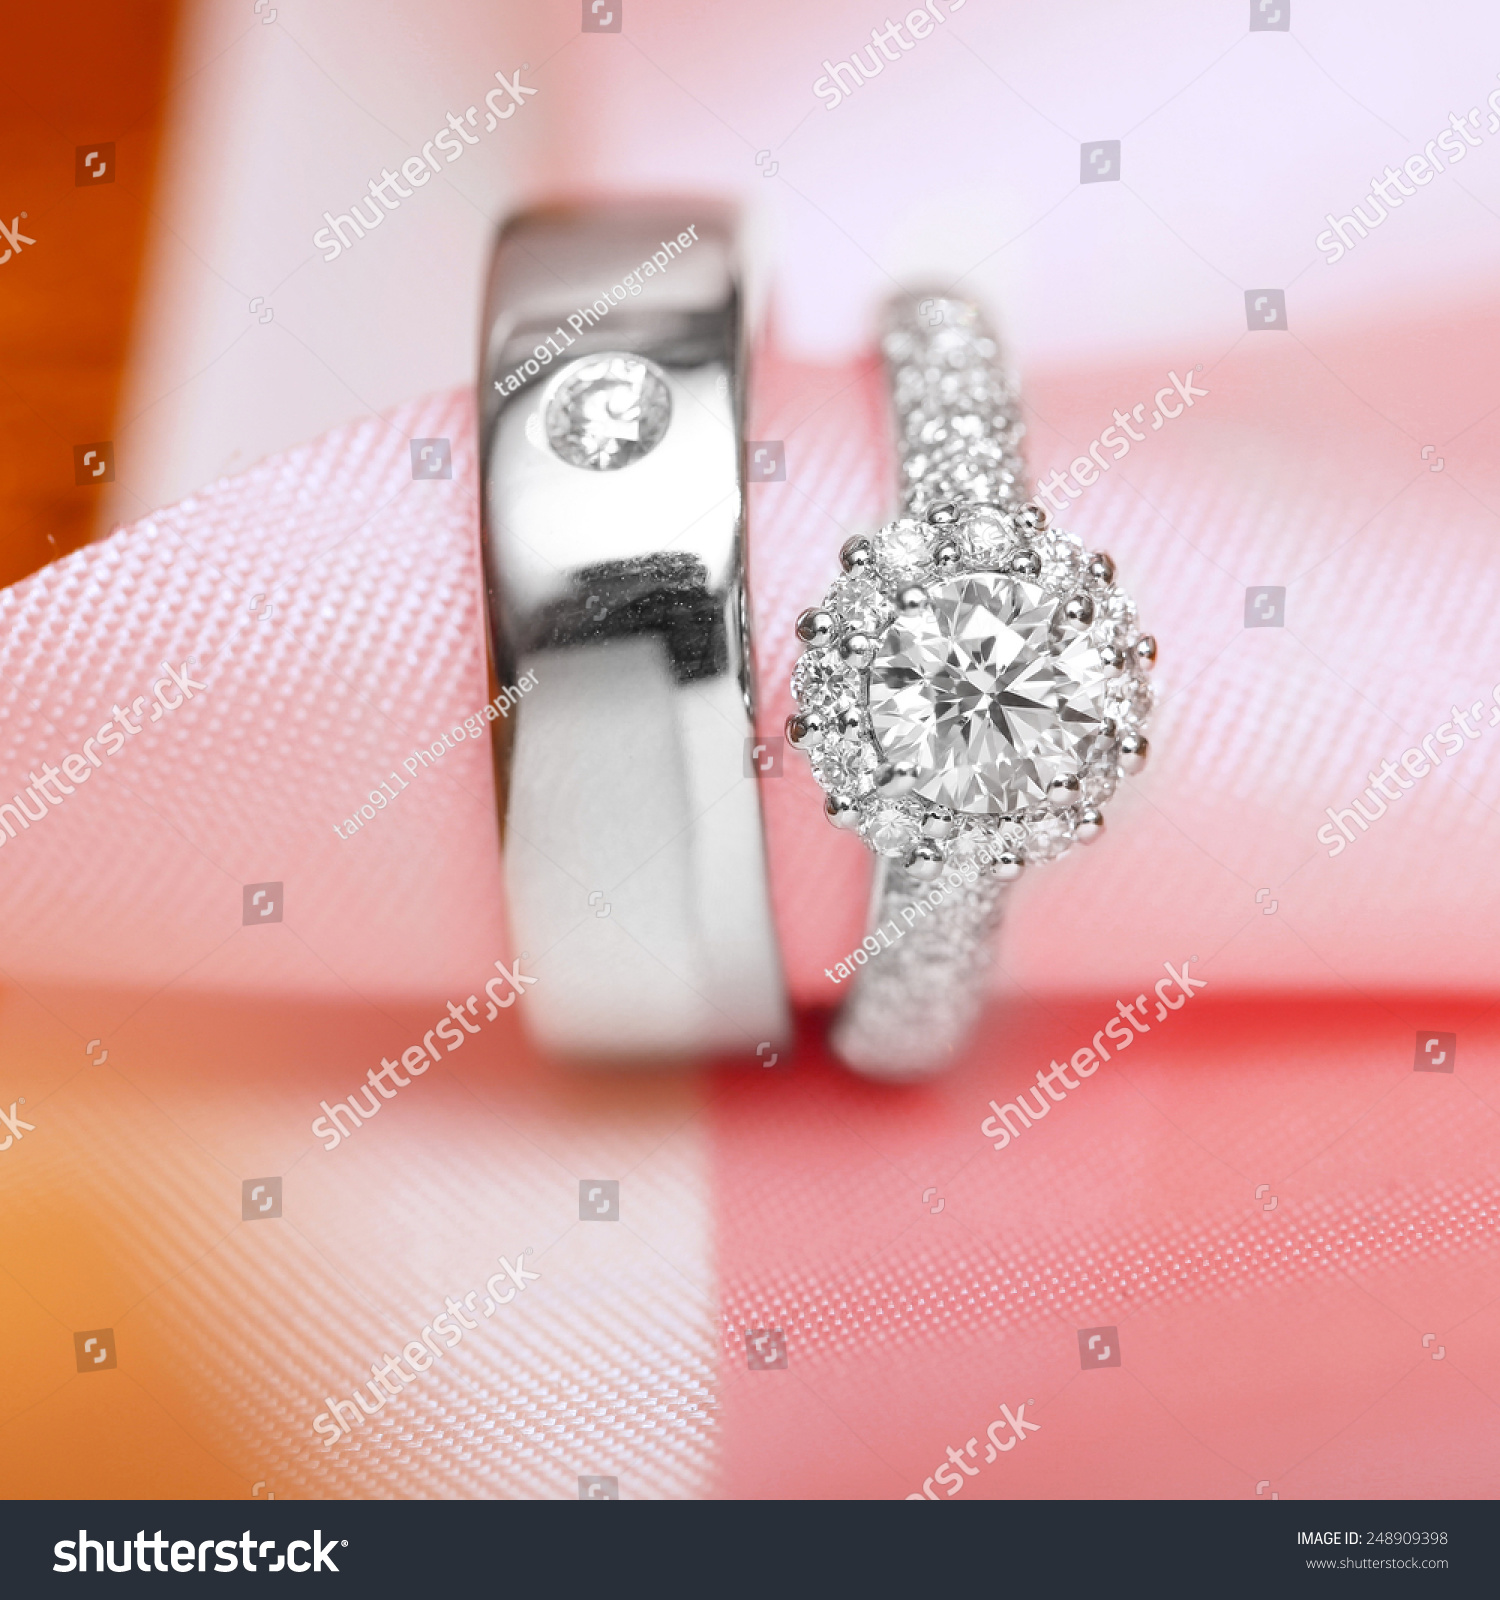 Diamond Couple Wedding Rings On Pink Stock Photo (Download Now ...